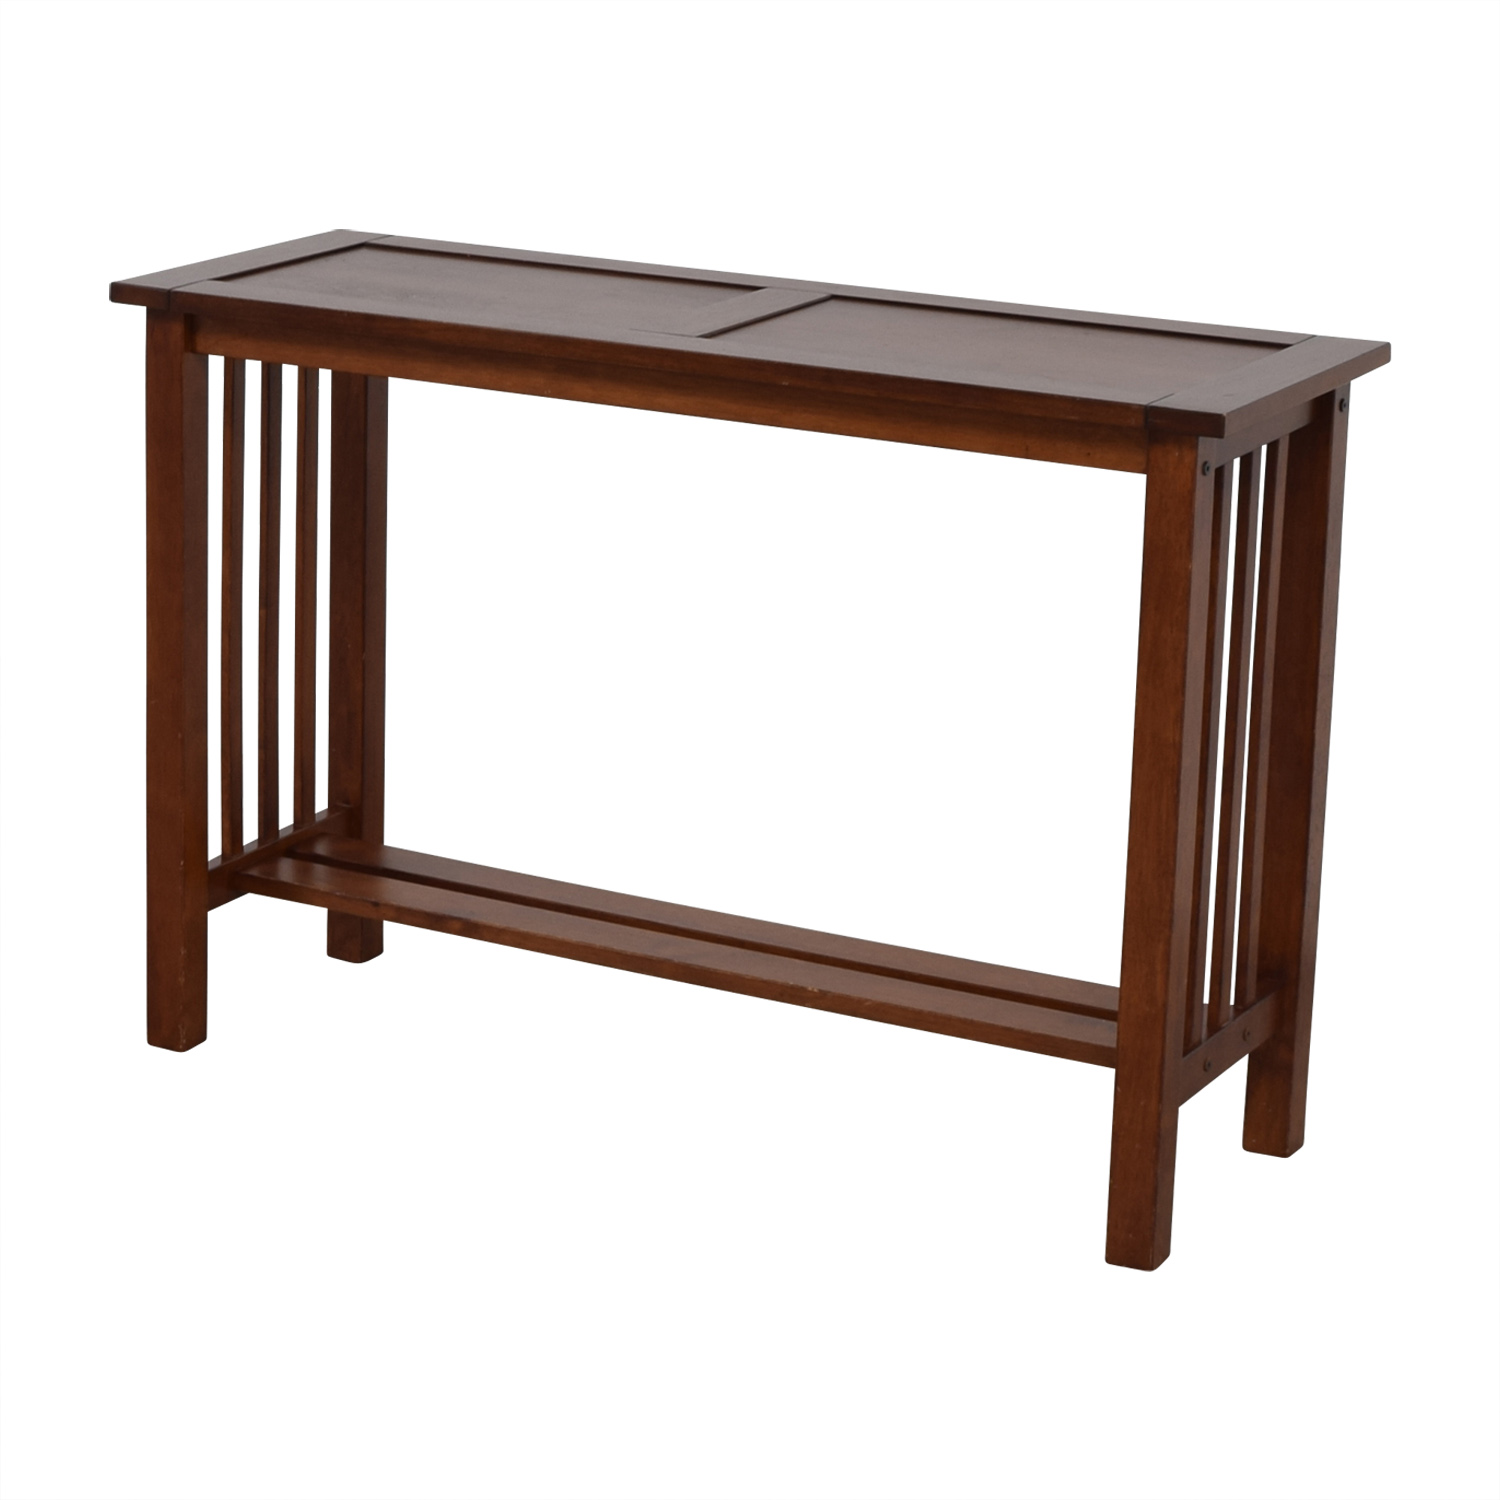 Crate & Barrel Crate & Barrel Console Table discount